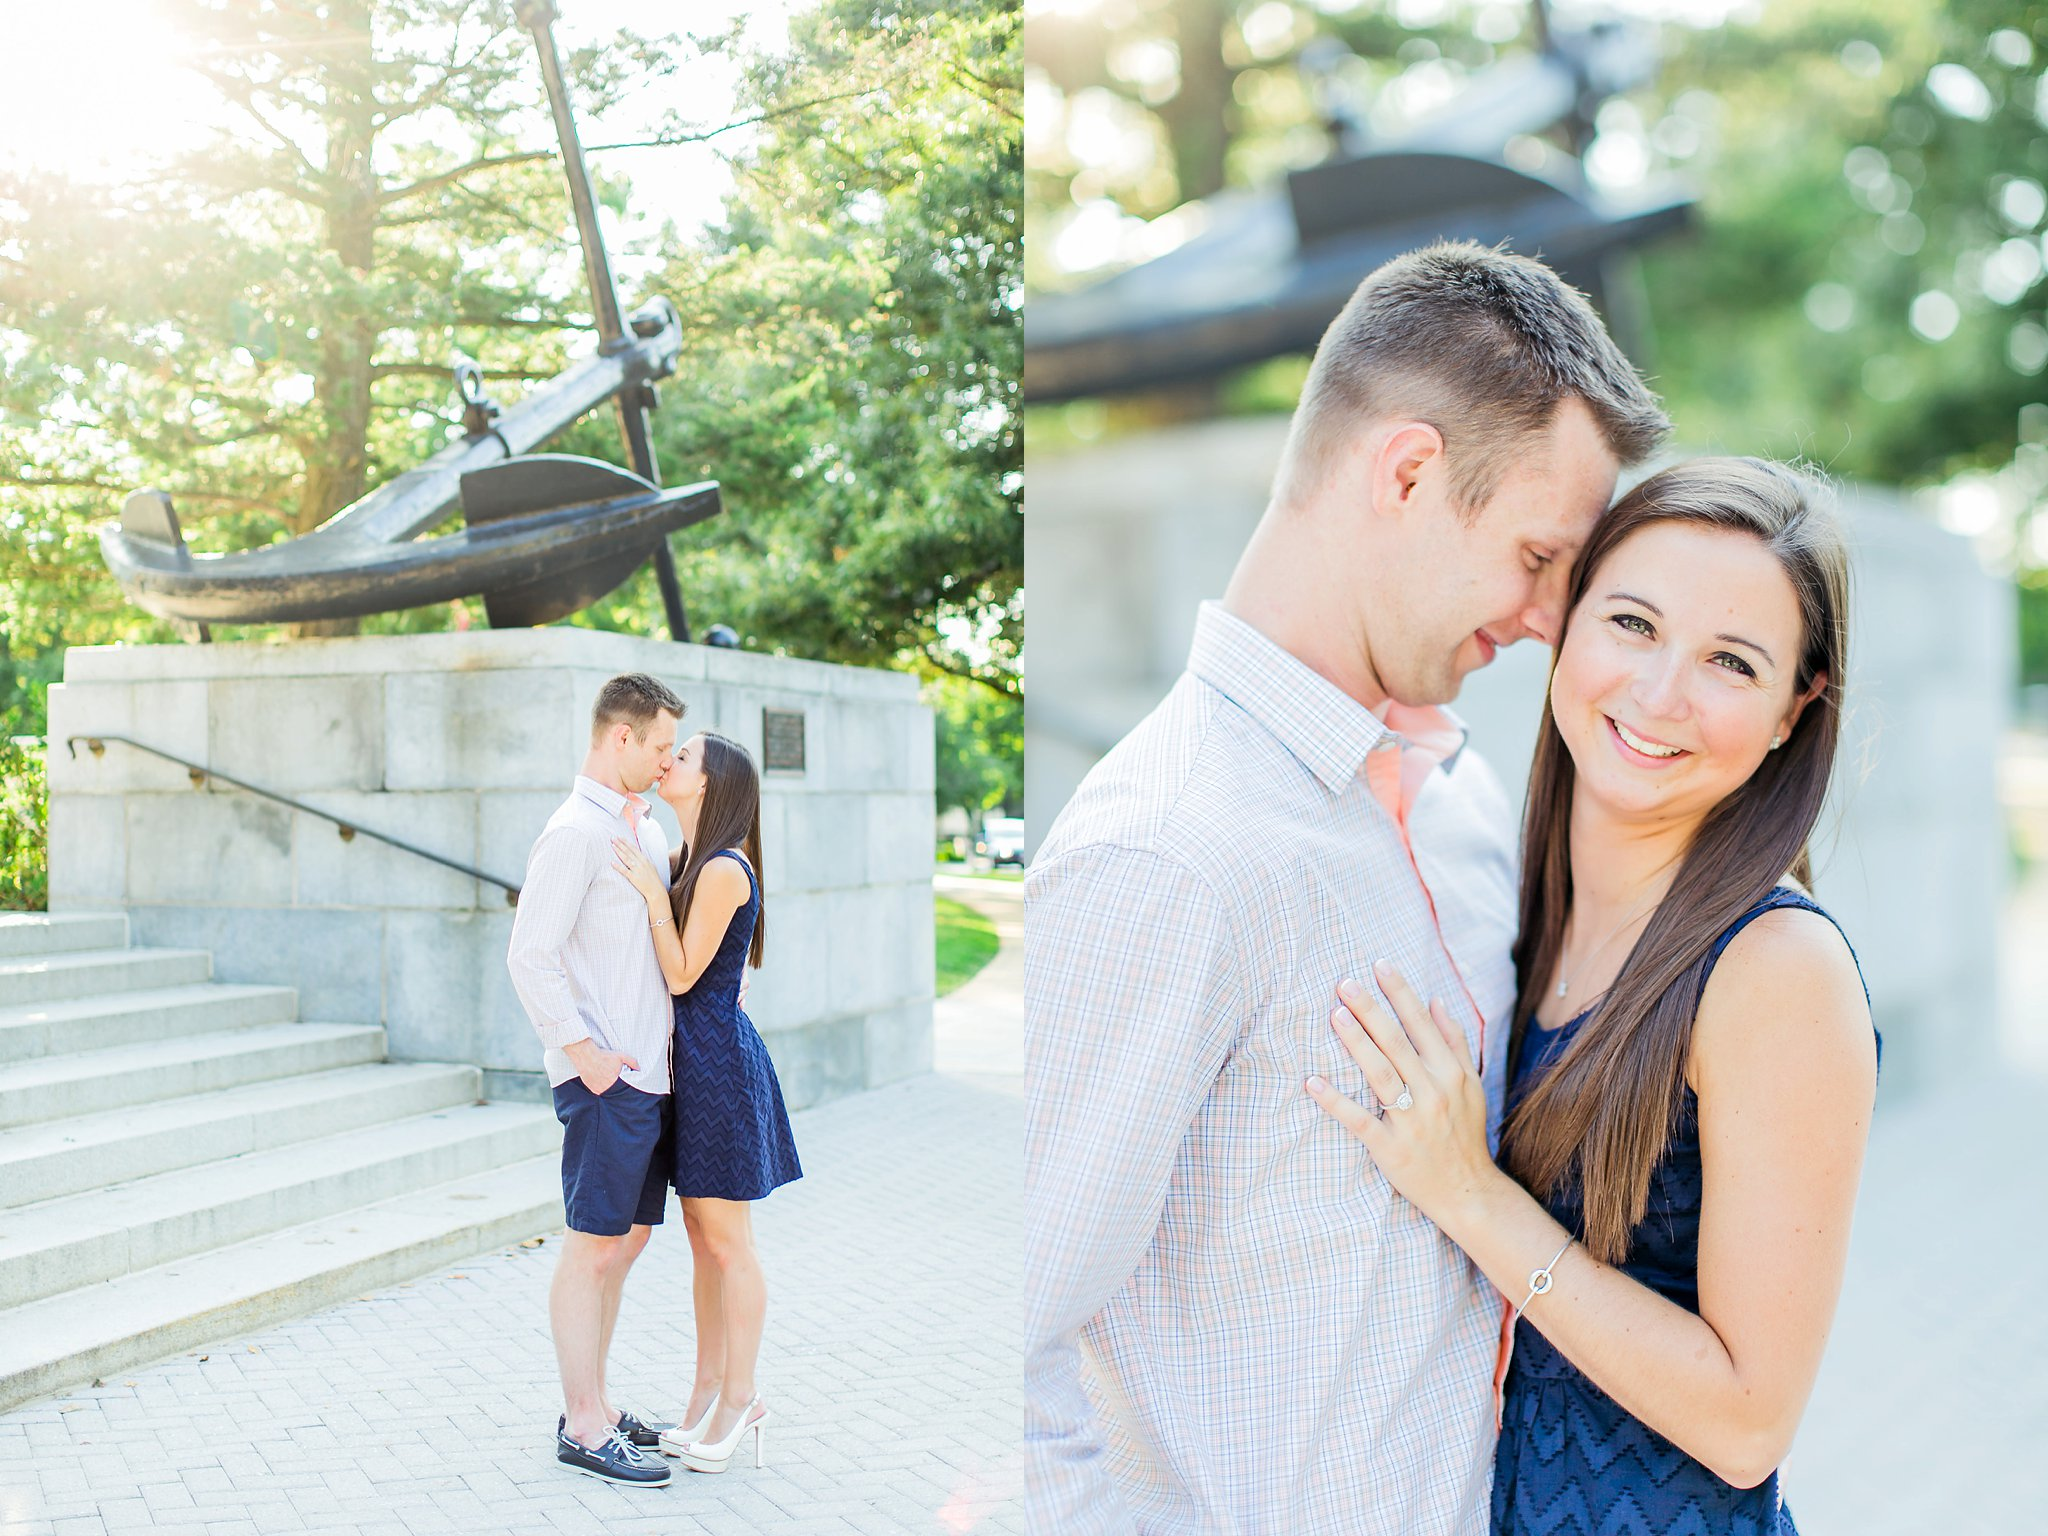 Naval Academy Engagement Photos Annapolis Wedding Photographer Megan Kelsey Photography Megan & Travis-28.jpg